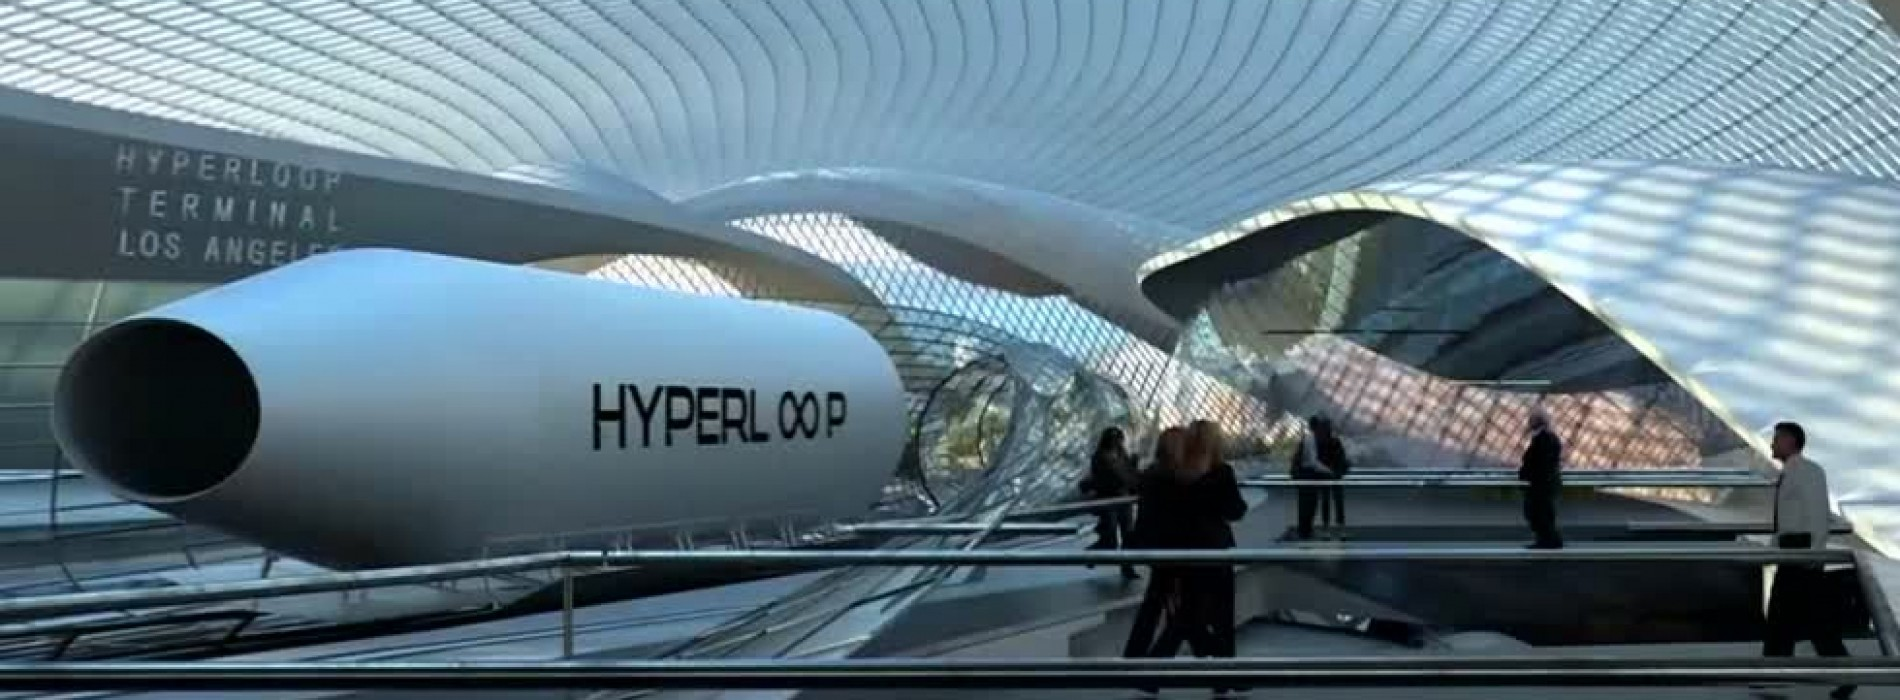 ET GBS 2017: India should invest in the future, not bullet trains says Bibop G Gresta of Hyperloop